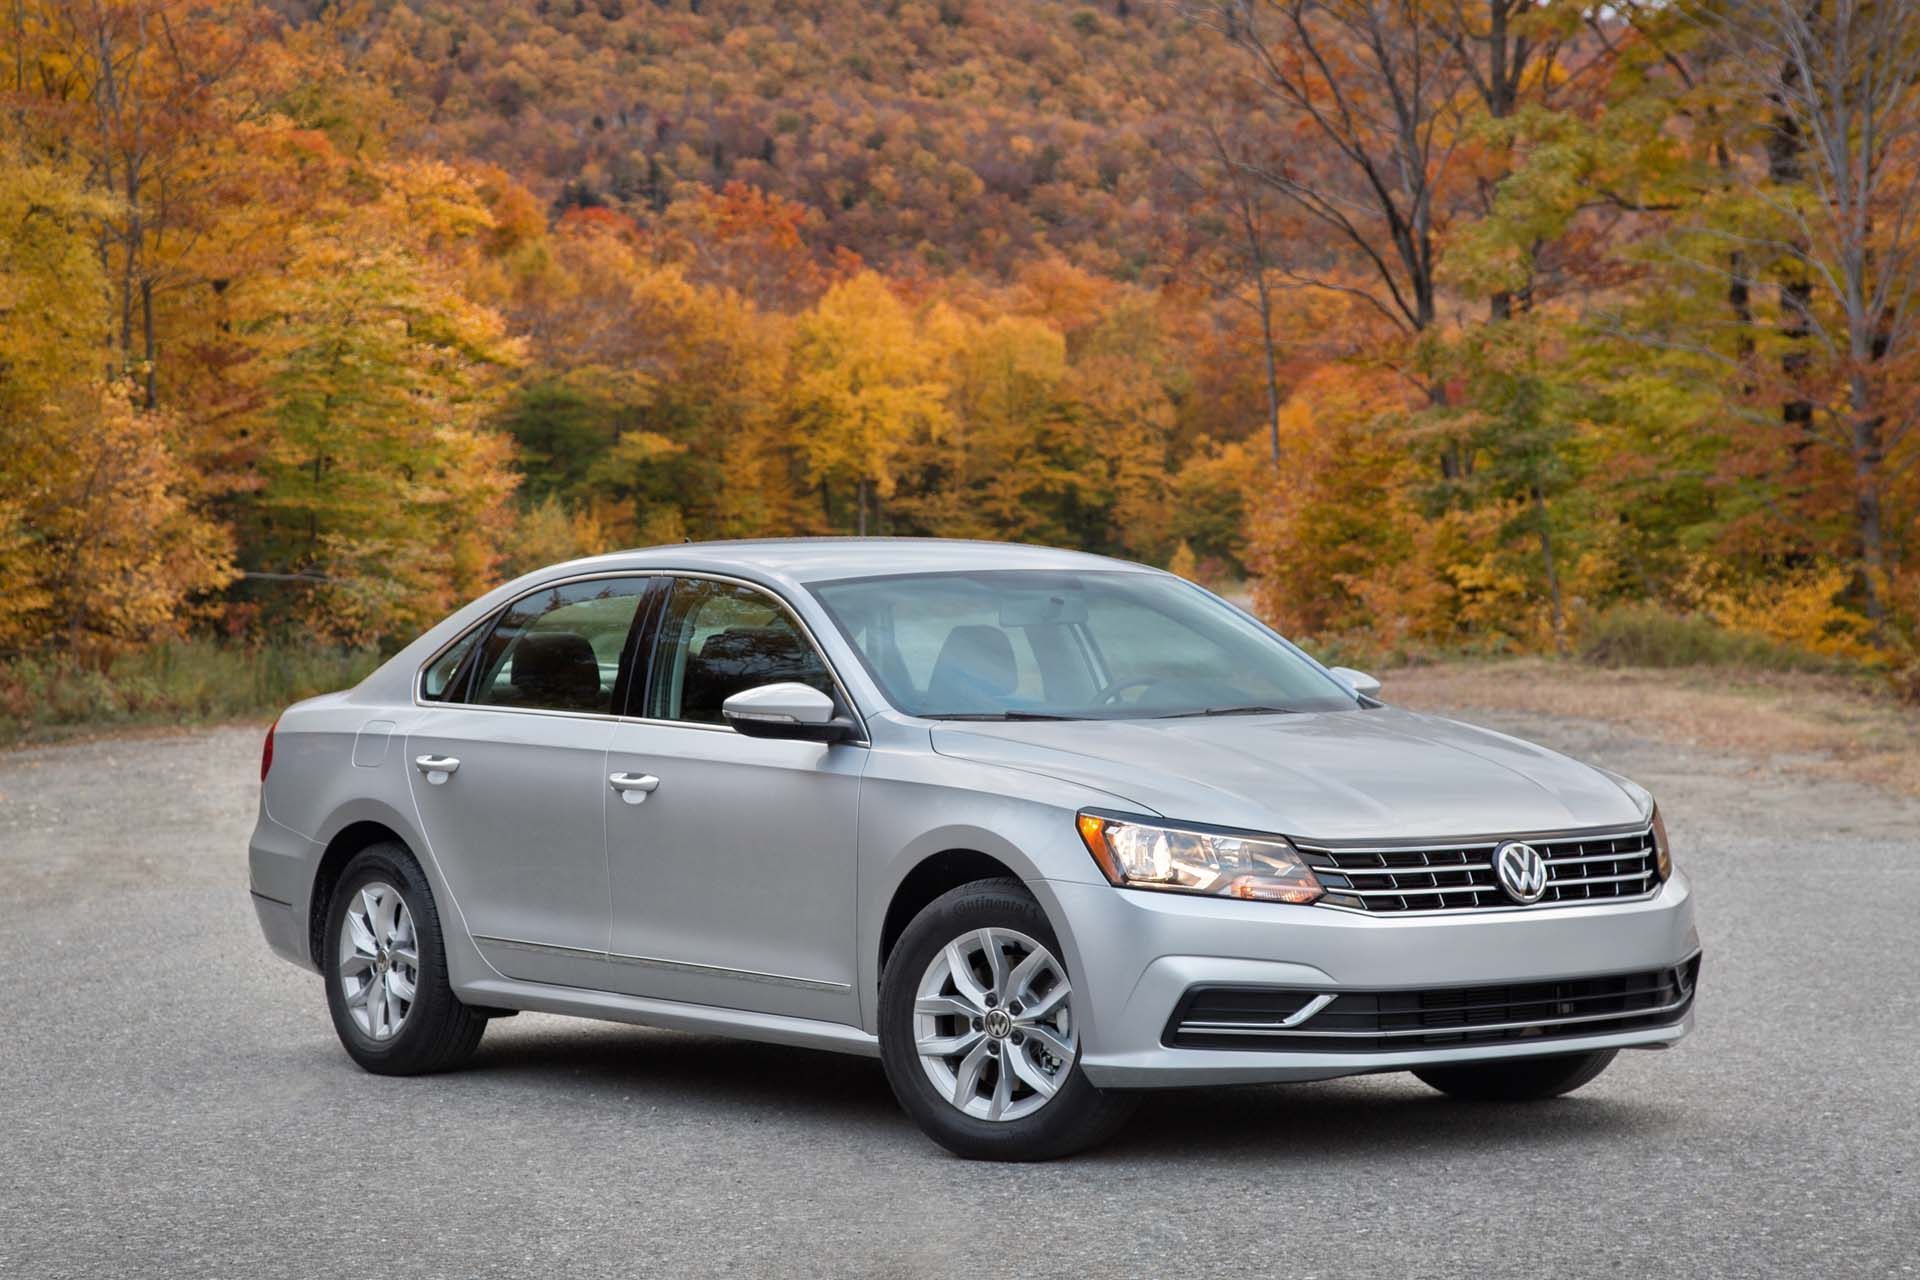 2017 Volkswagen Passat recalled over brake fluid leak